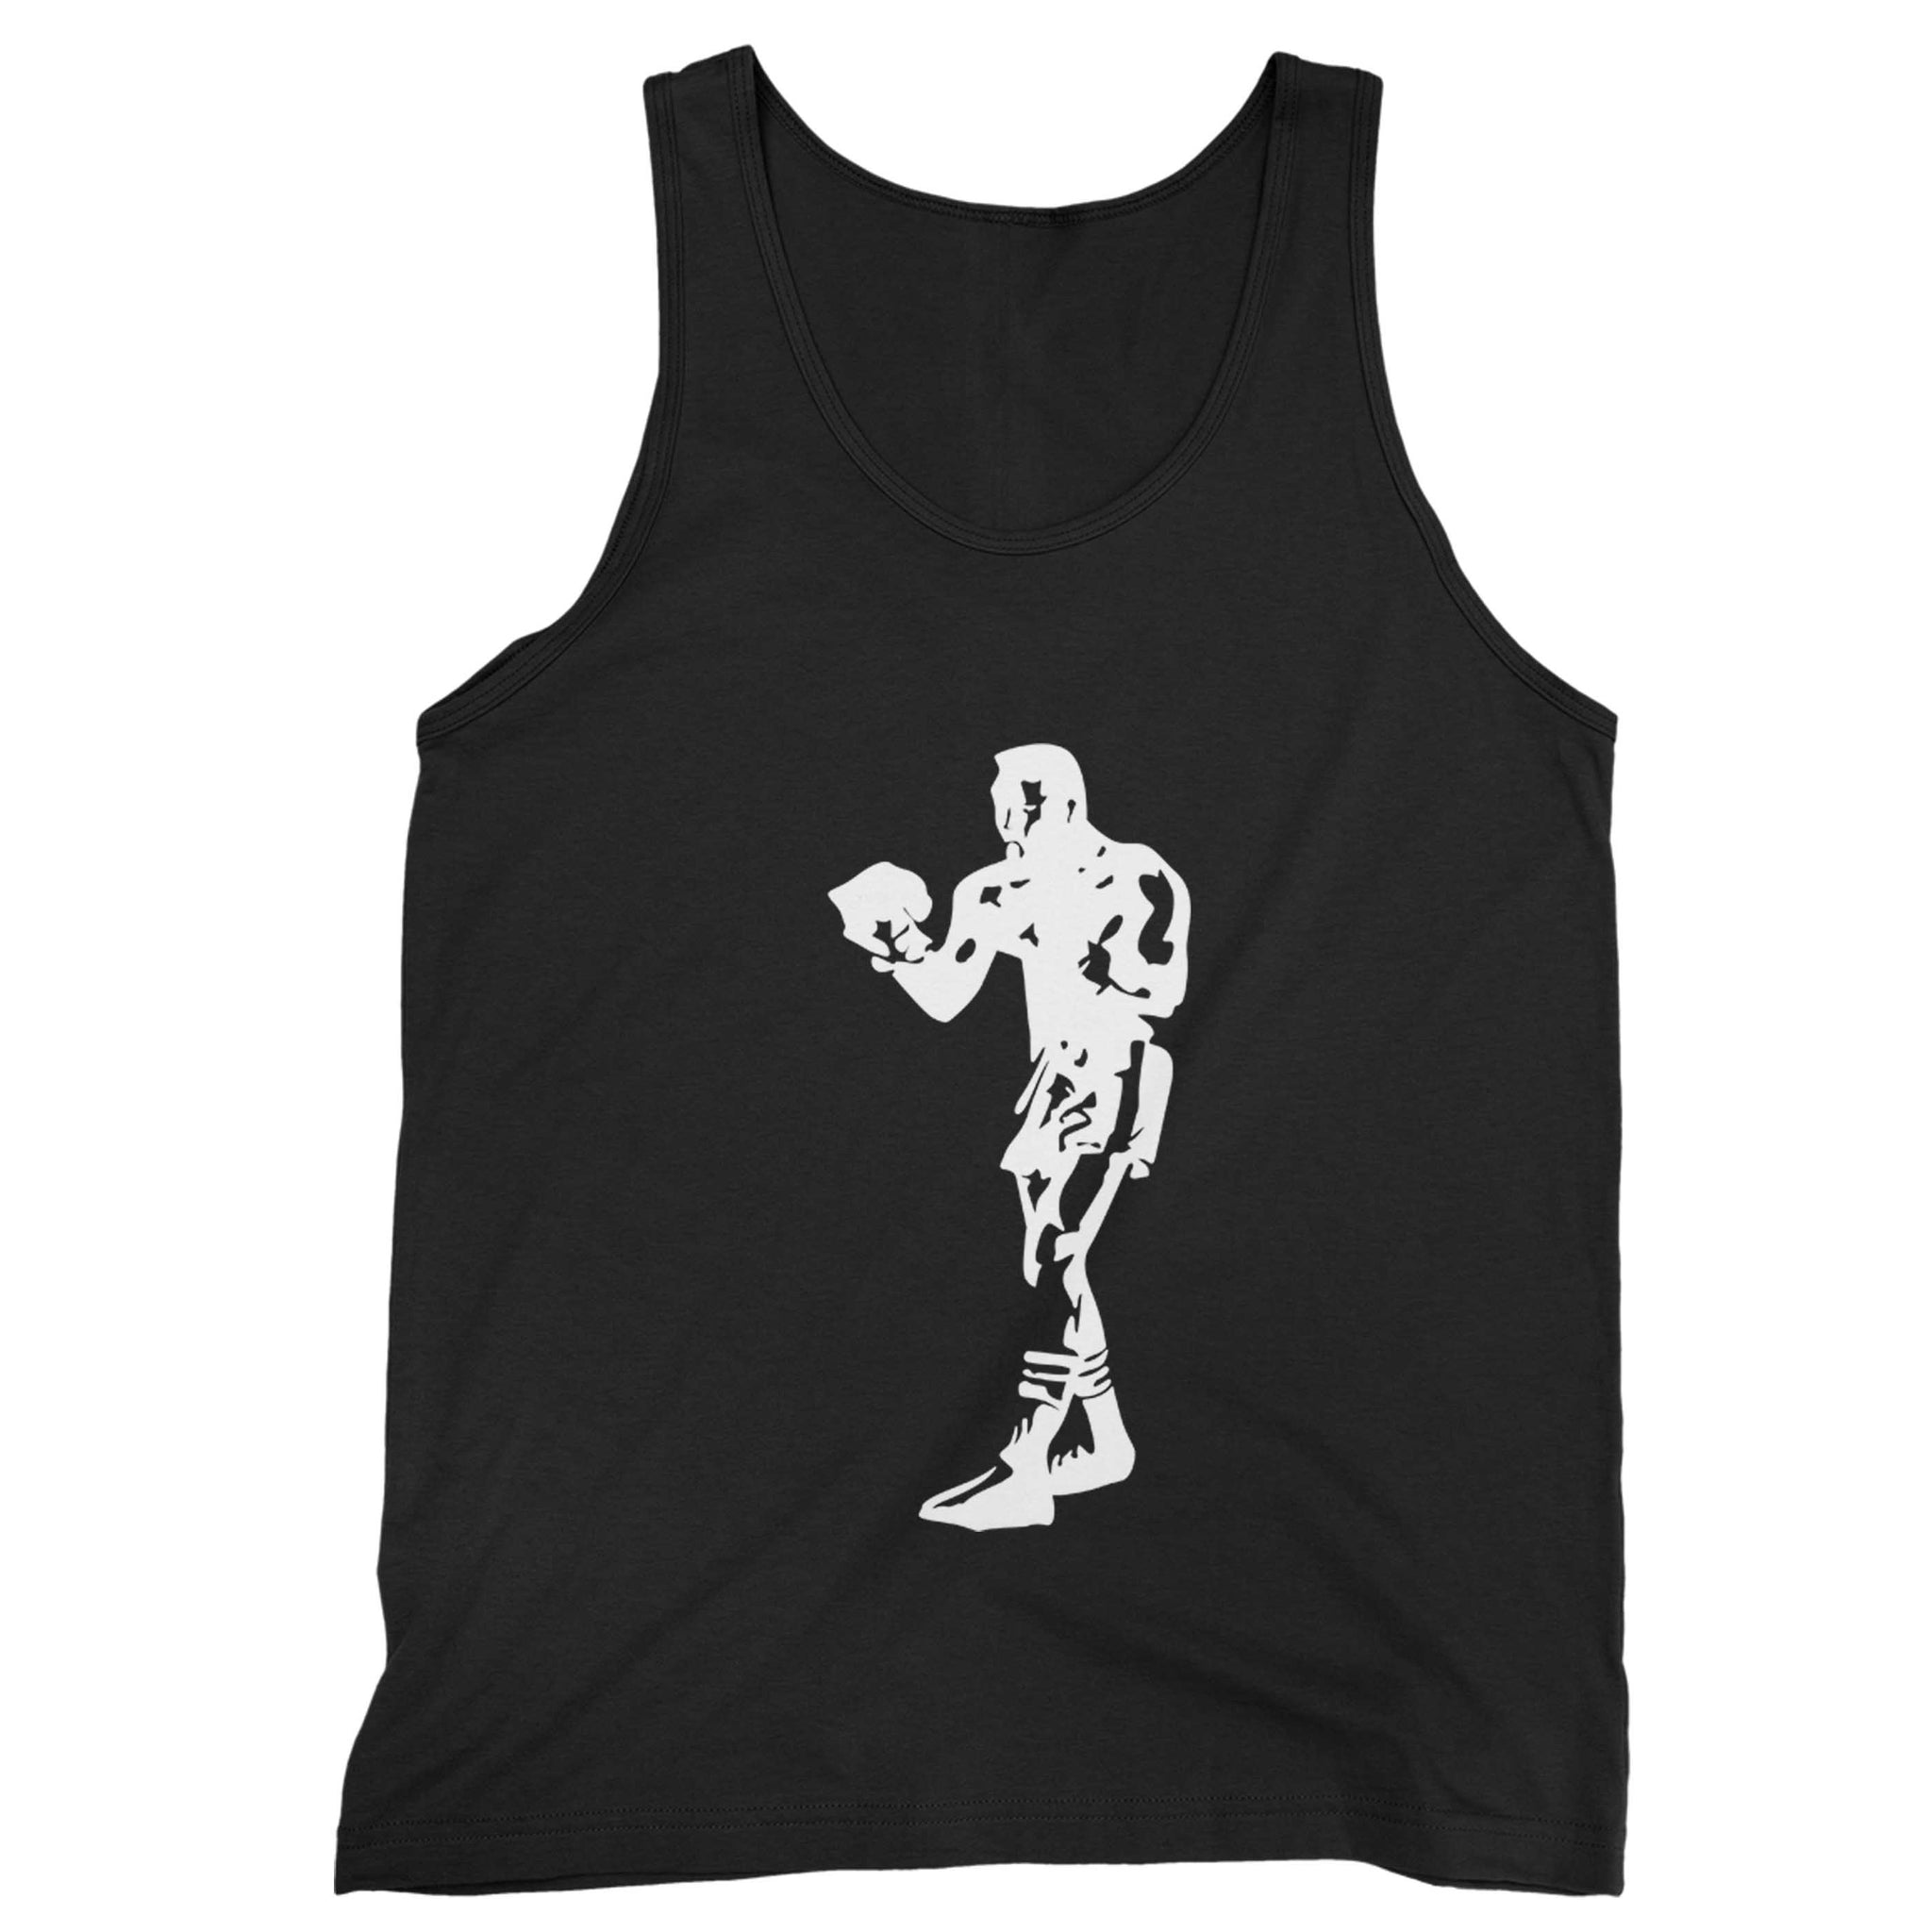 The Boxer Muhammad Ali Boxing Man's Tank Top